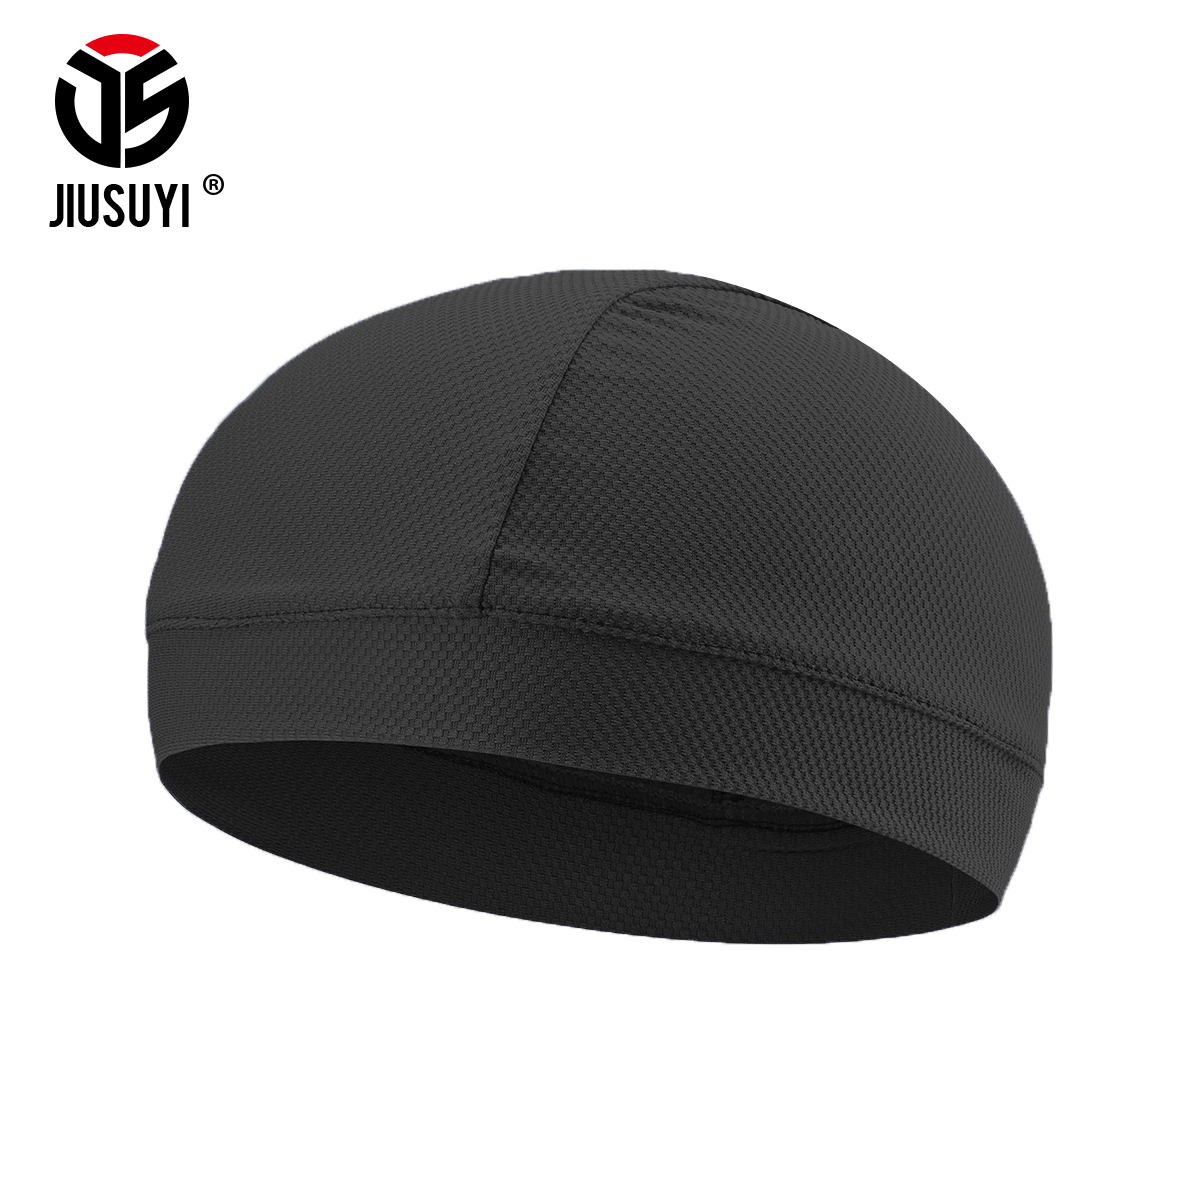 Diplomatic Summer Breathable Windproof Beanies Pirate Hats Bicycle Tactical Airsoft Paintball Helmet Liner Headgear Protaction Head Cap Men's Skullies & Beanies